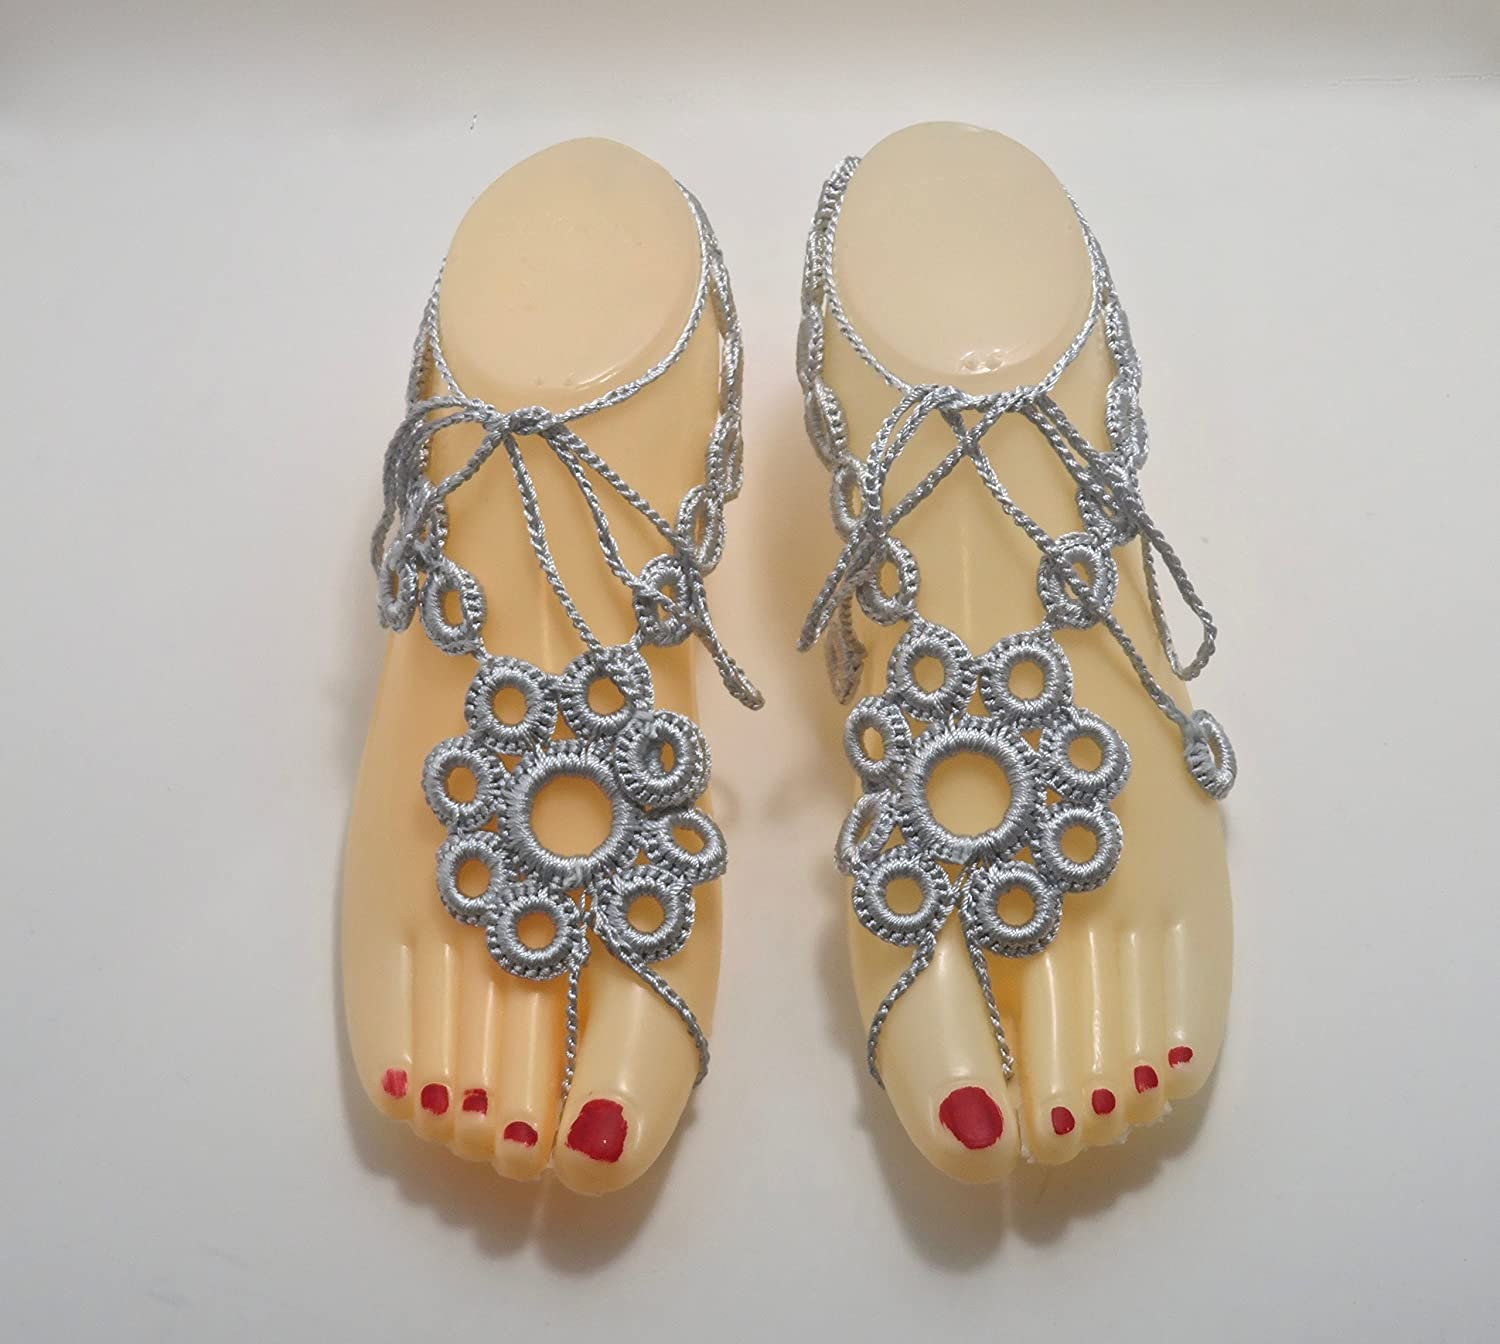 Deluxe Handmade Max 43% OFF Silver Bare-Foot Sandals Beach